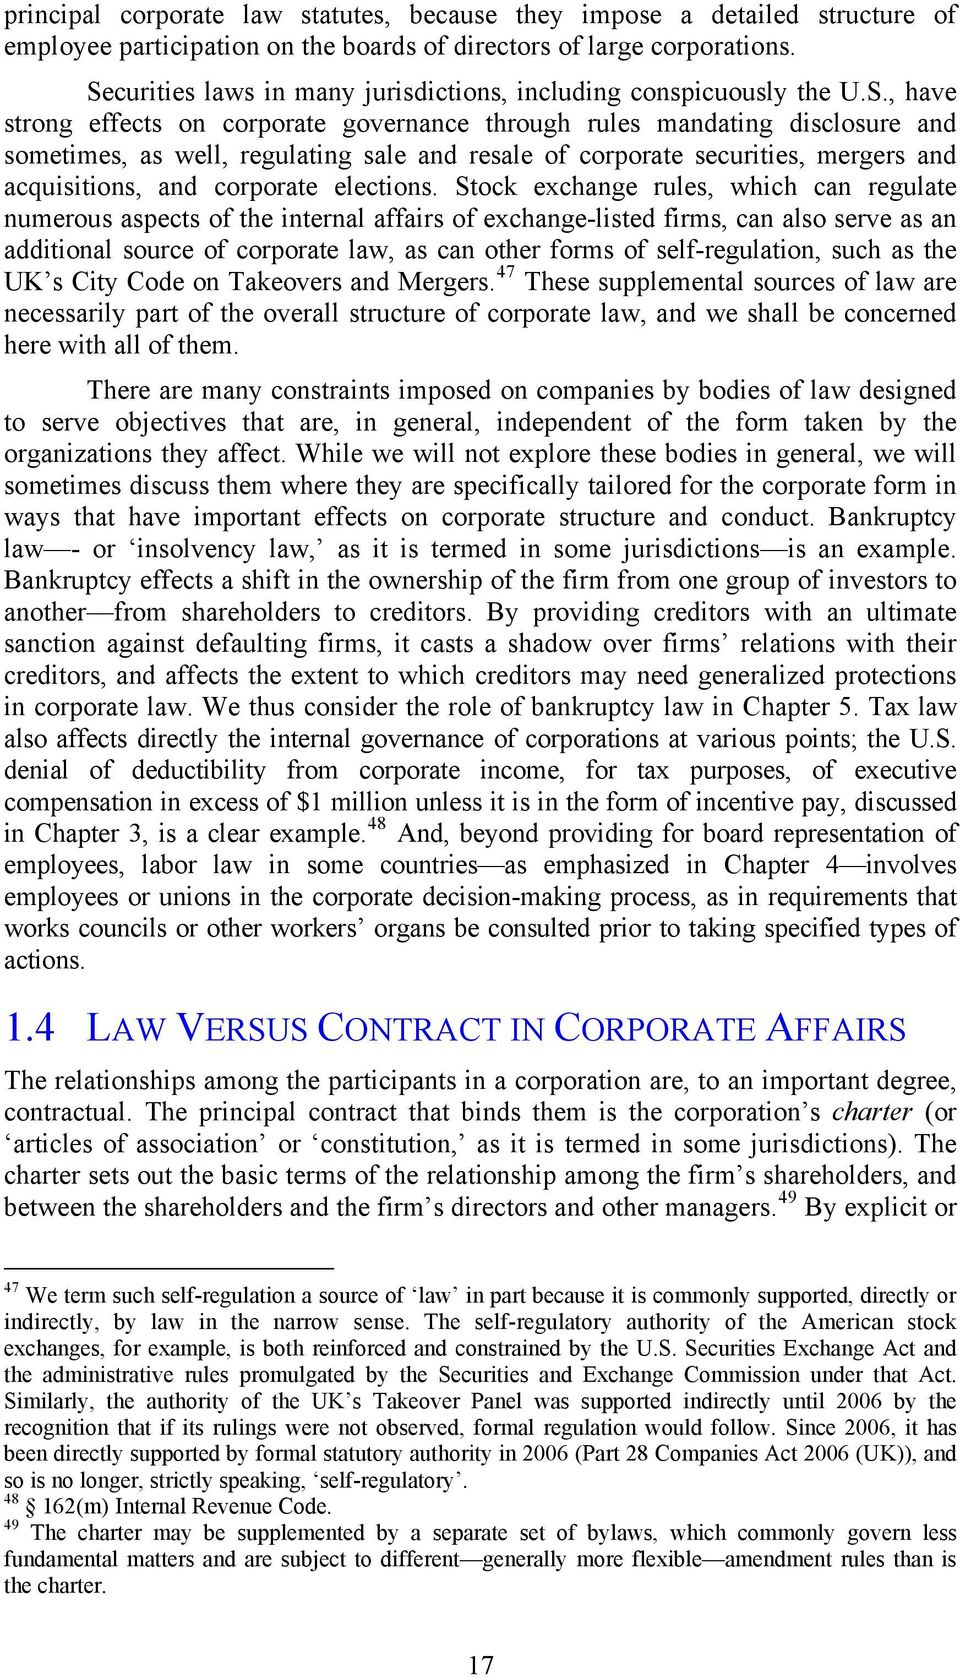 resale of corporate securities, mergers and acquisitions, and corporate elections.